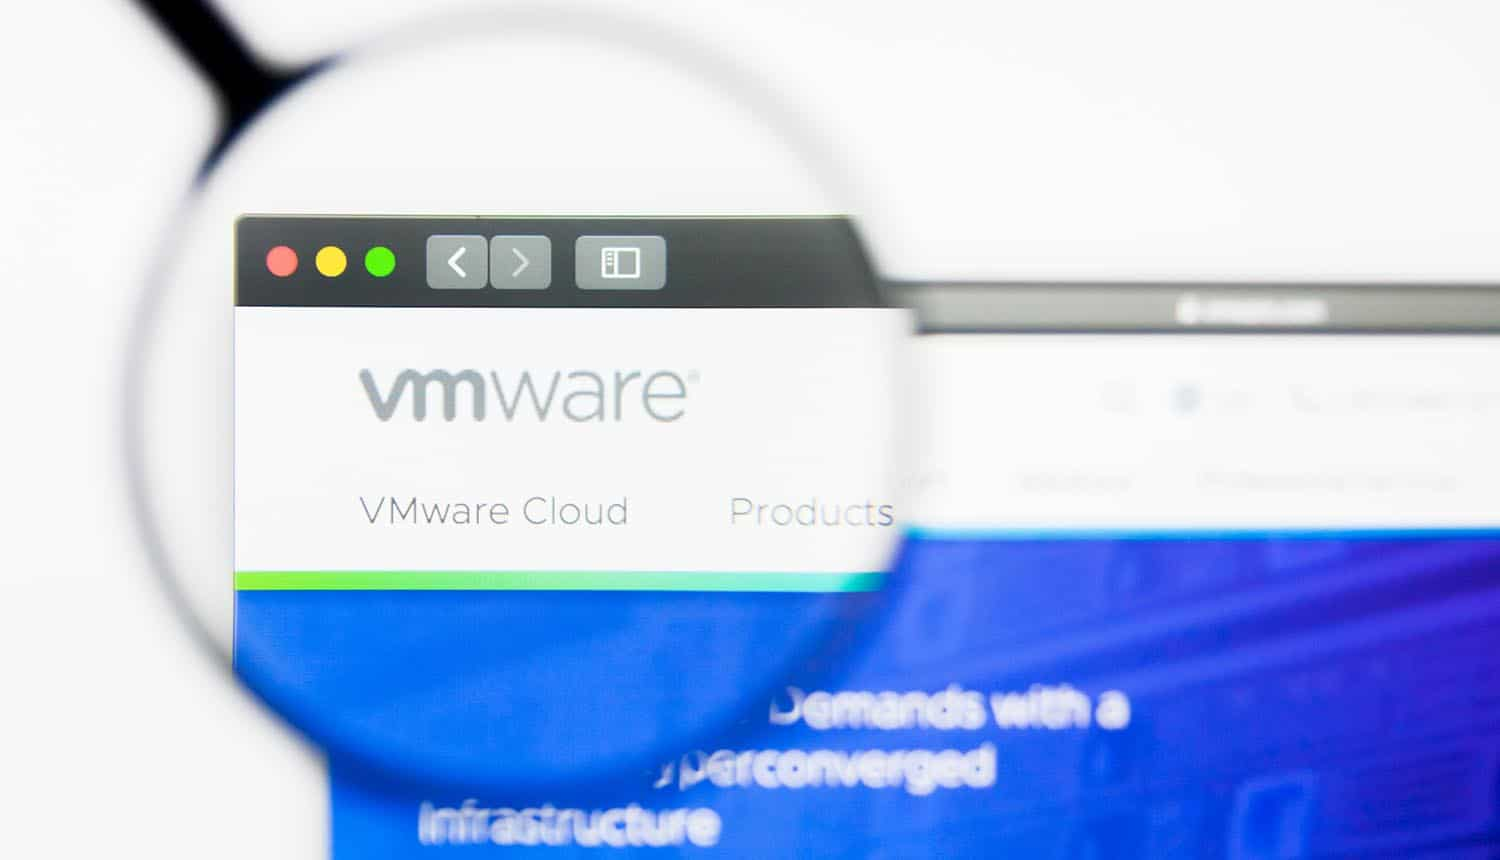 Magnifying glass over VMware website showing security bug affecting VMware servers